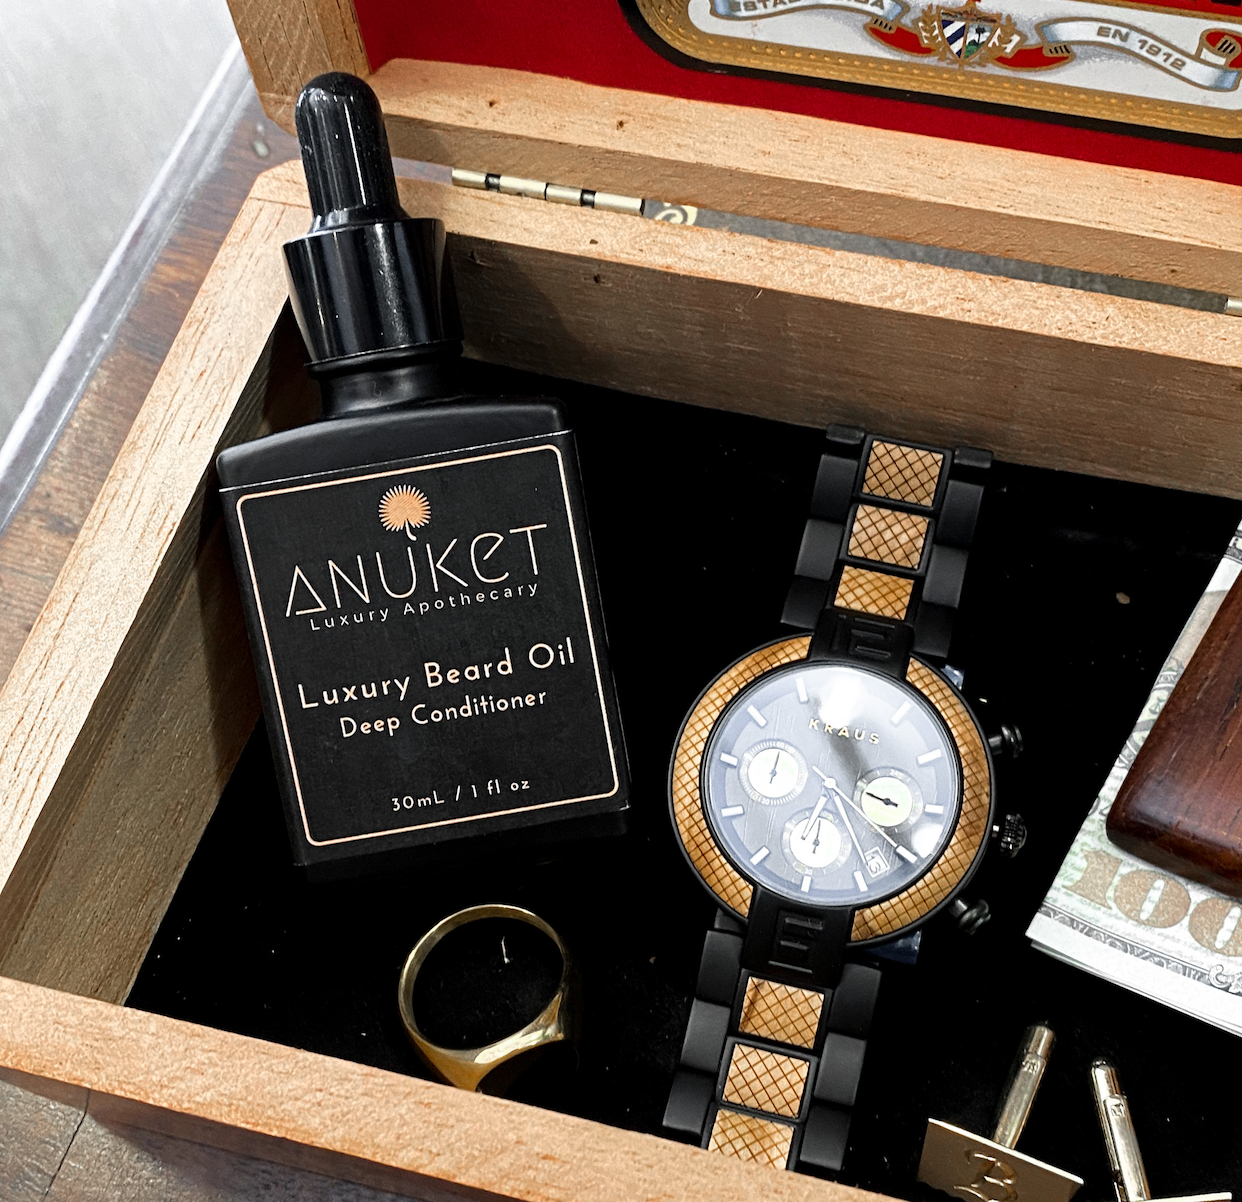 Bottle of Anuket Luxury Beard Oil in a men's valet box with ring, watch, and cufflinks